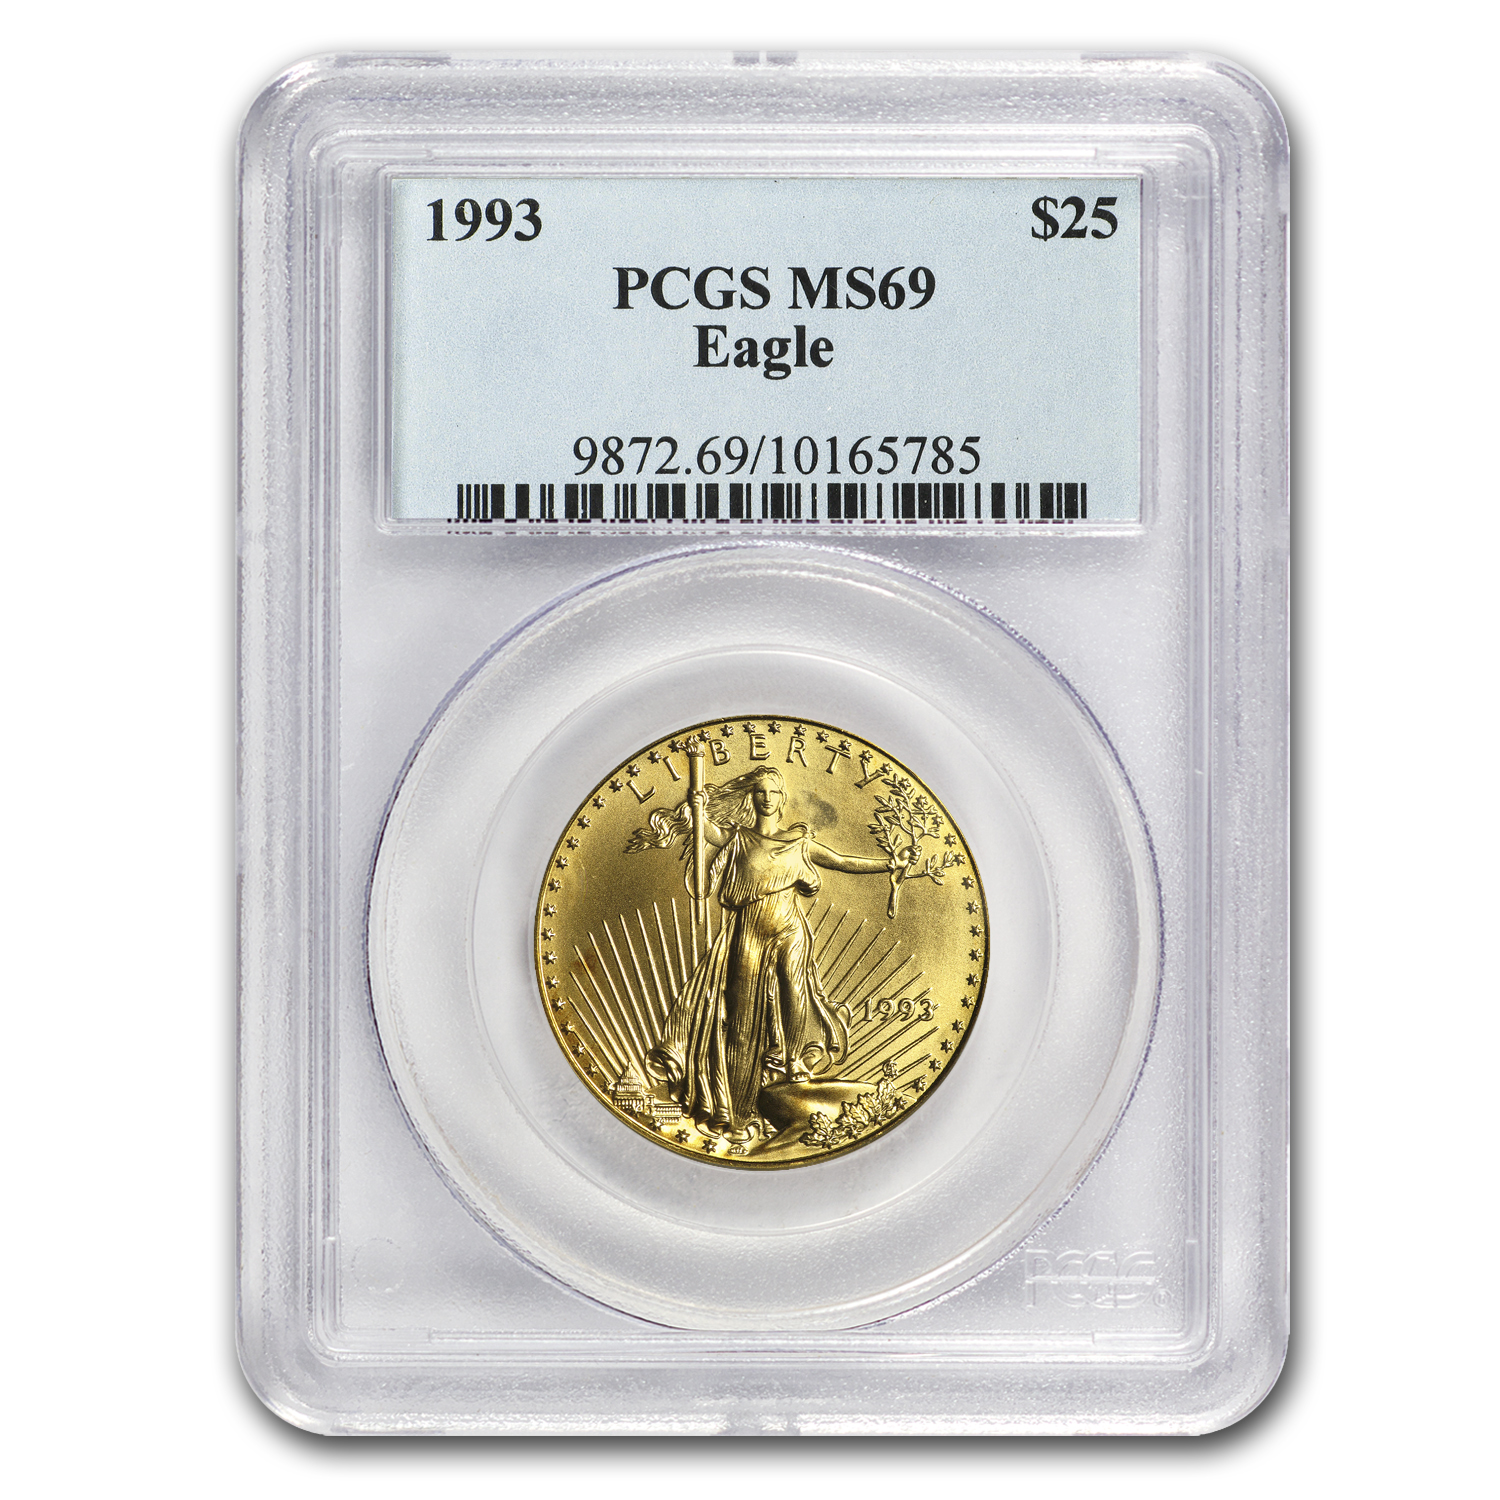 1993 1/2 oz Gold American Eagle MS-69 PCGS